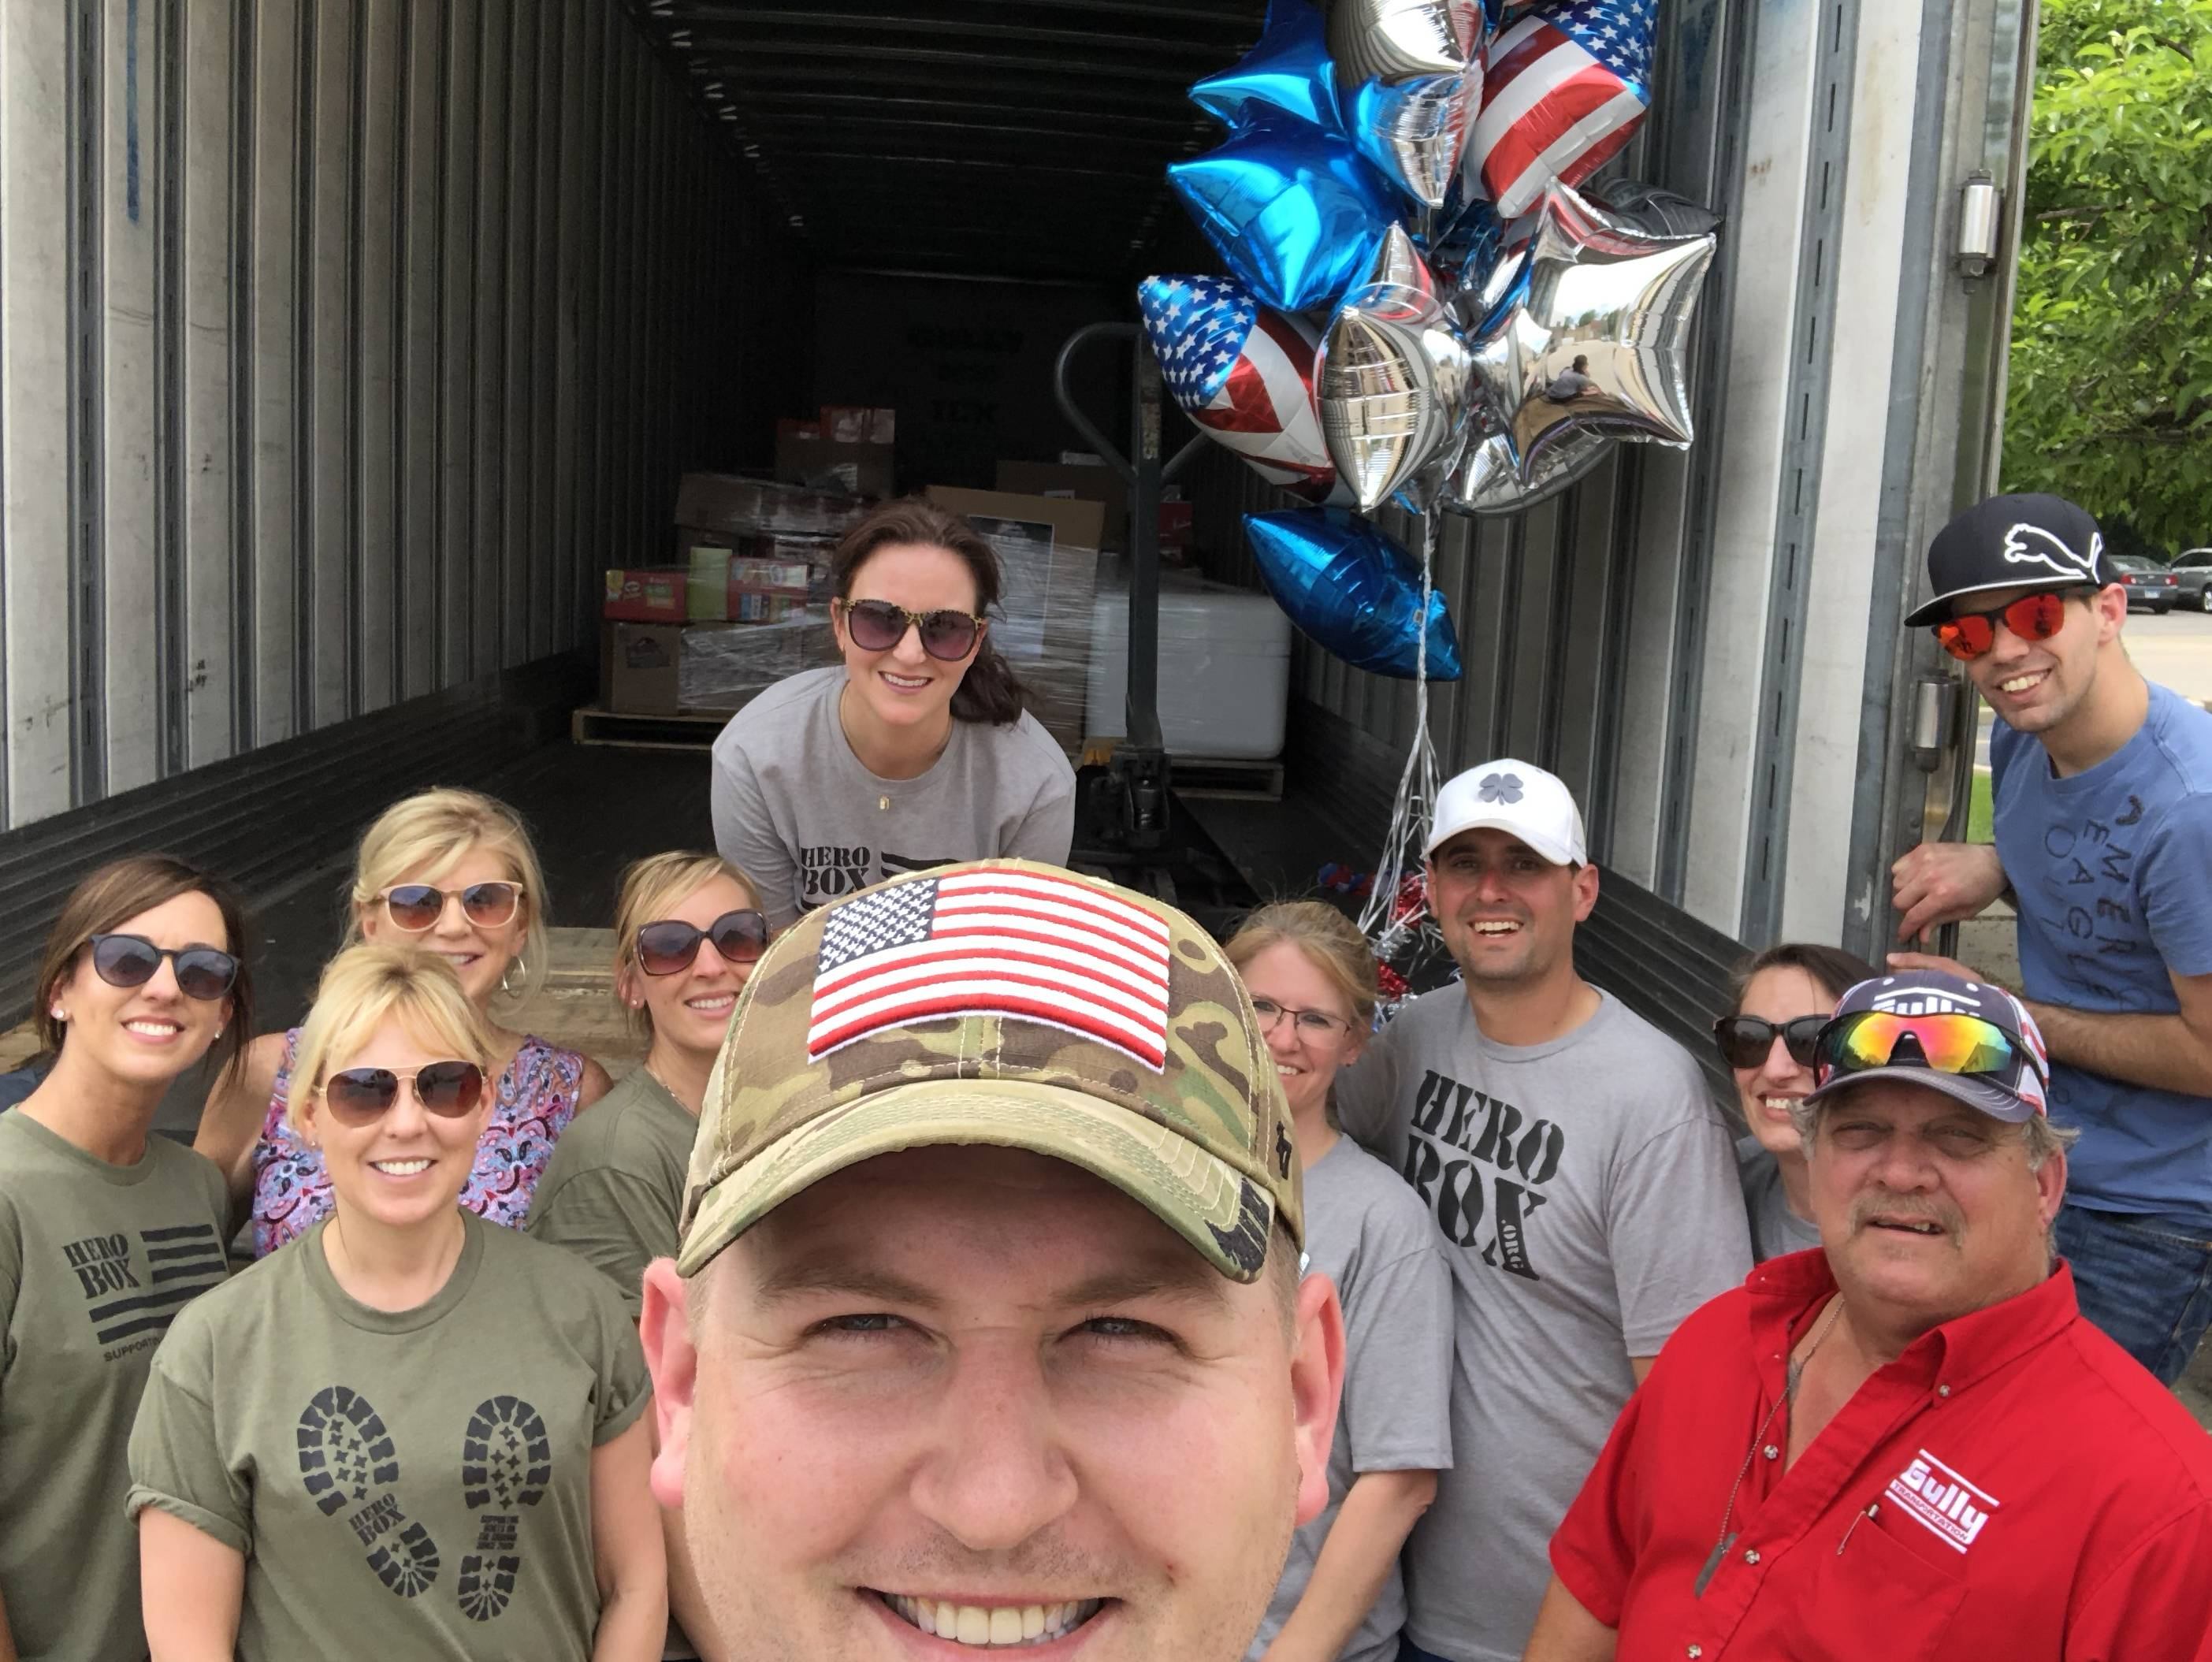 CHAD GILBRETH AND HIS TEAM SENDS 320 HEROBOX CARE PACKAGES